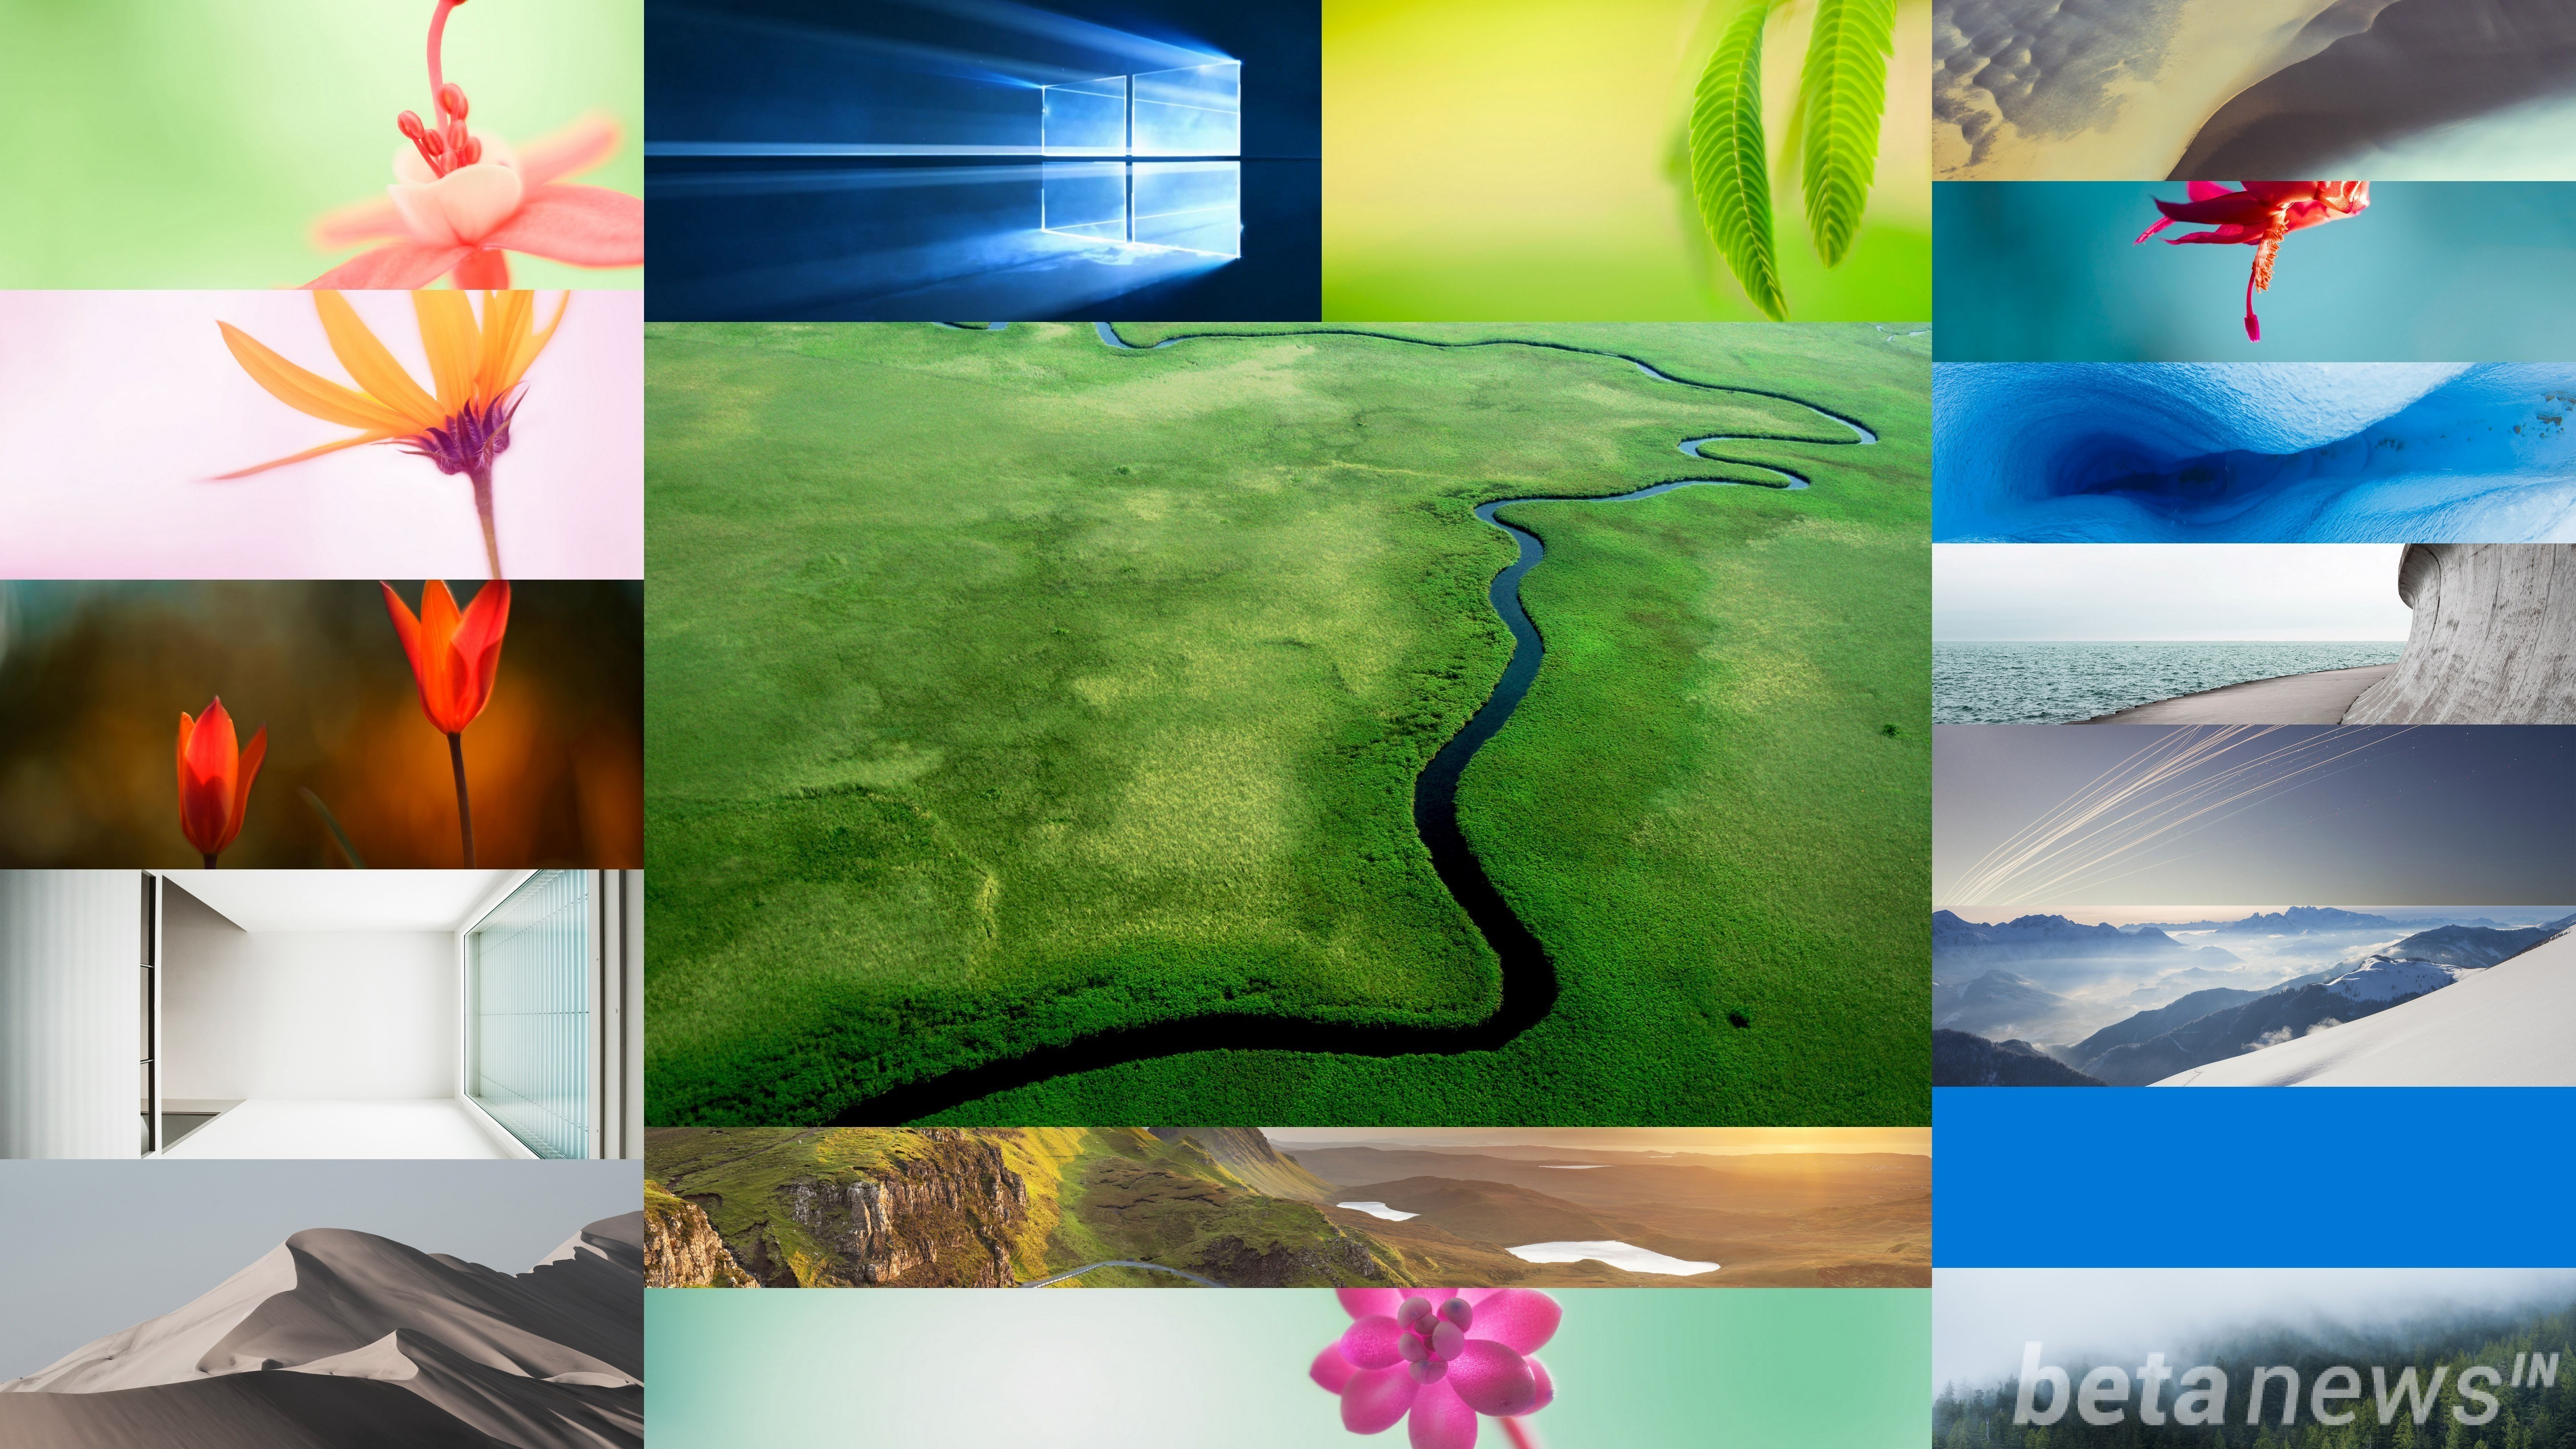 Download Windows 10 Wallpapers Pack (18 Win 10 Wallpapers)